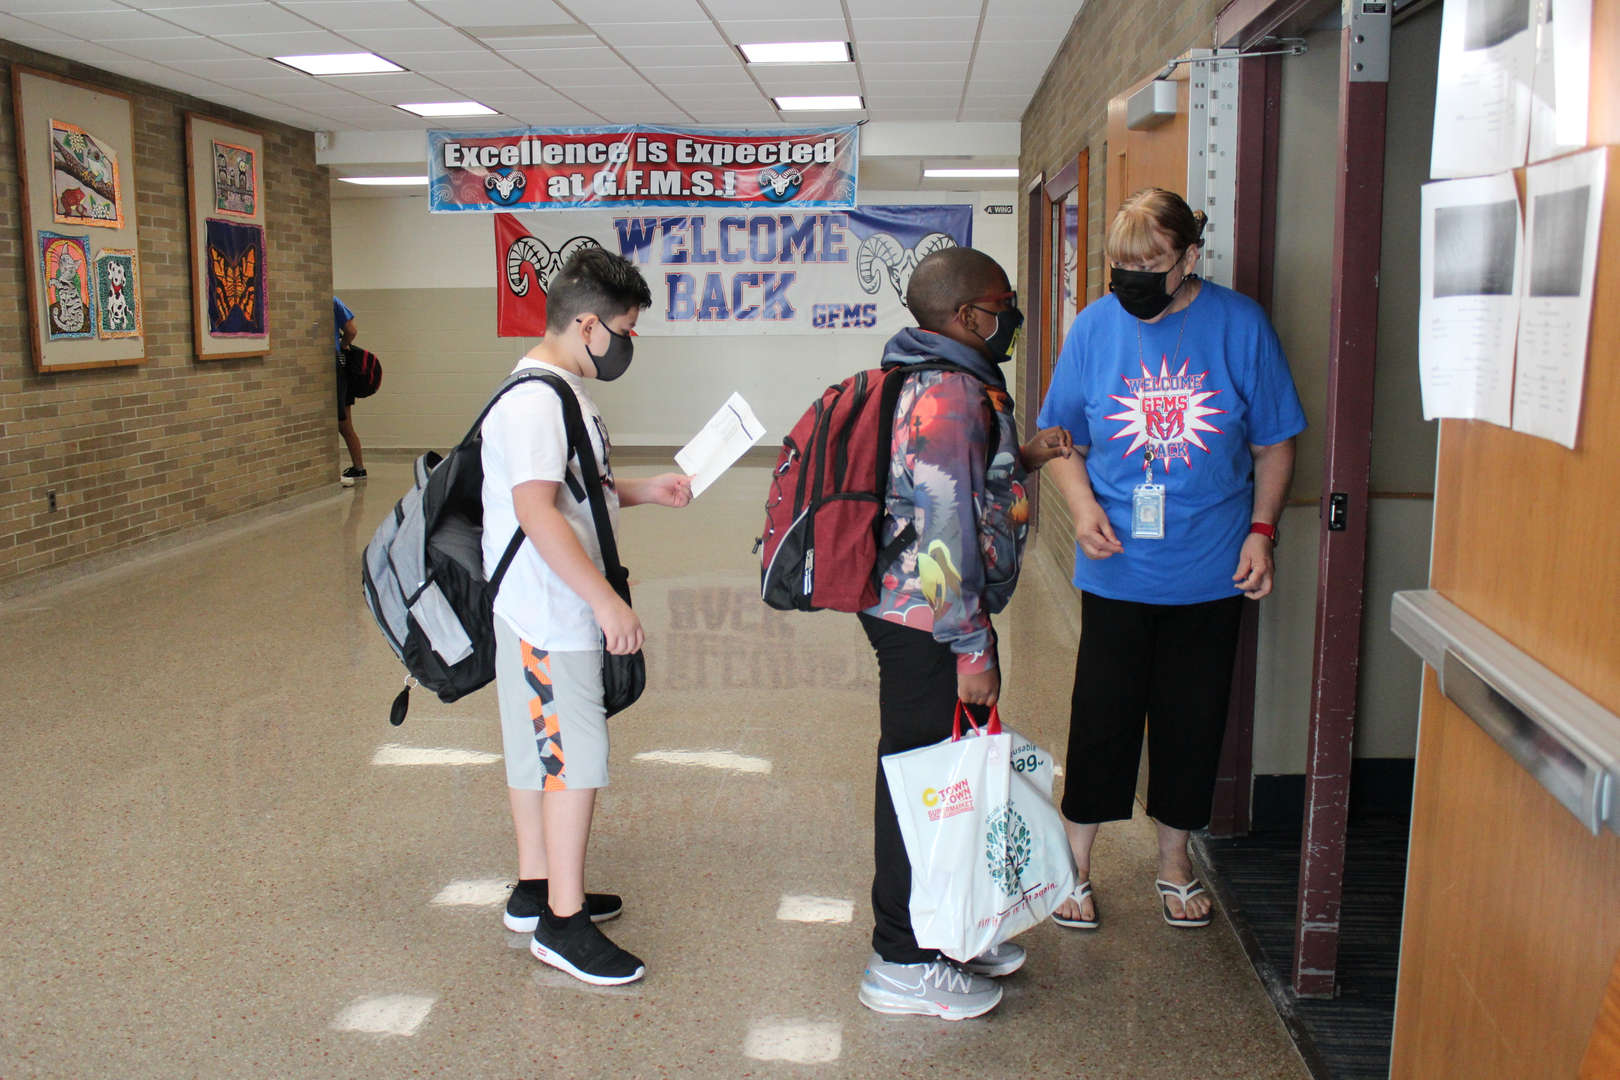 Students get help from staff entering the auditorium